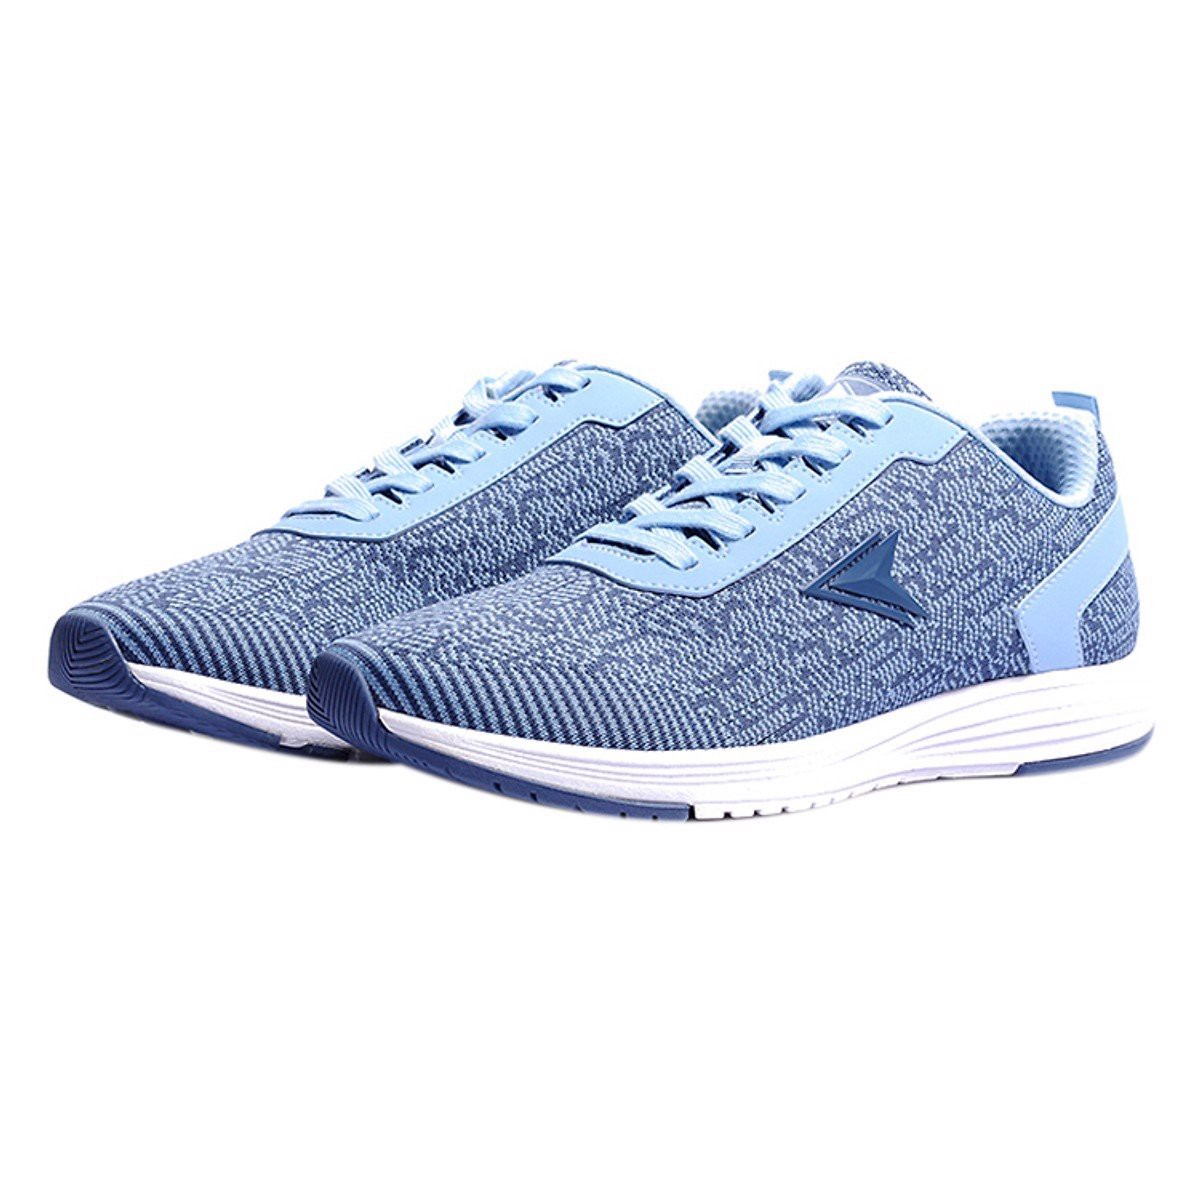 Giày Thể Thao Nam Biti's Hunter Collection Trial Collaboration - Tribal Baby Blue DSM068833XDG Size 41